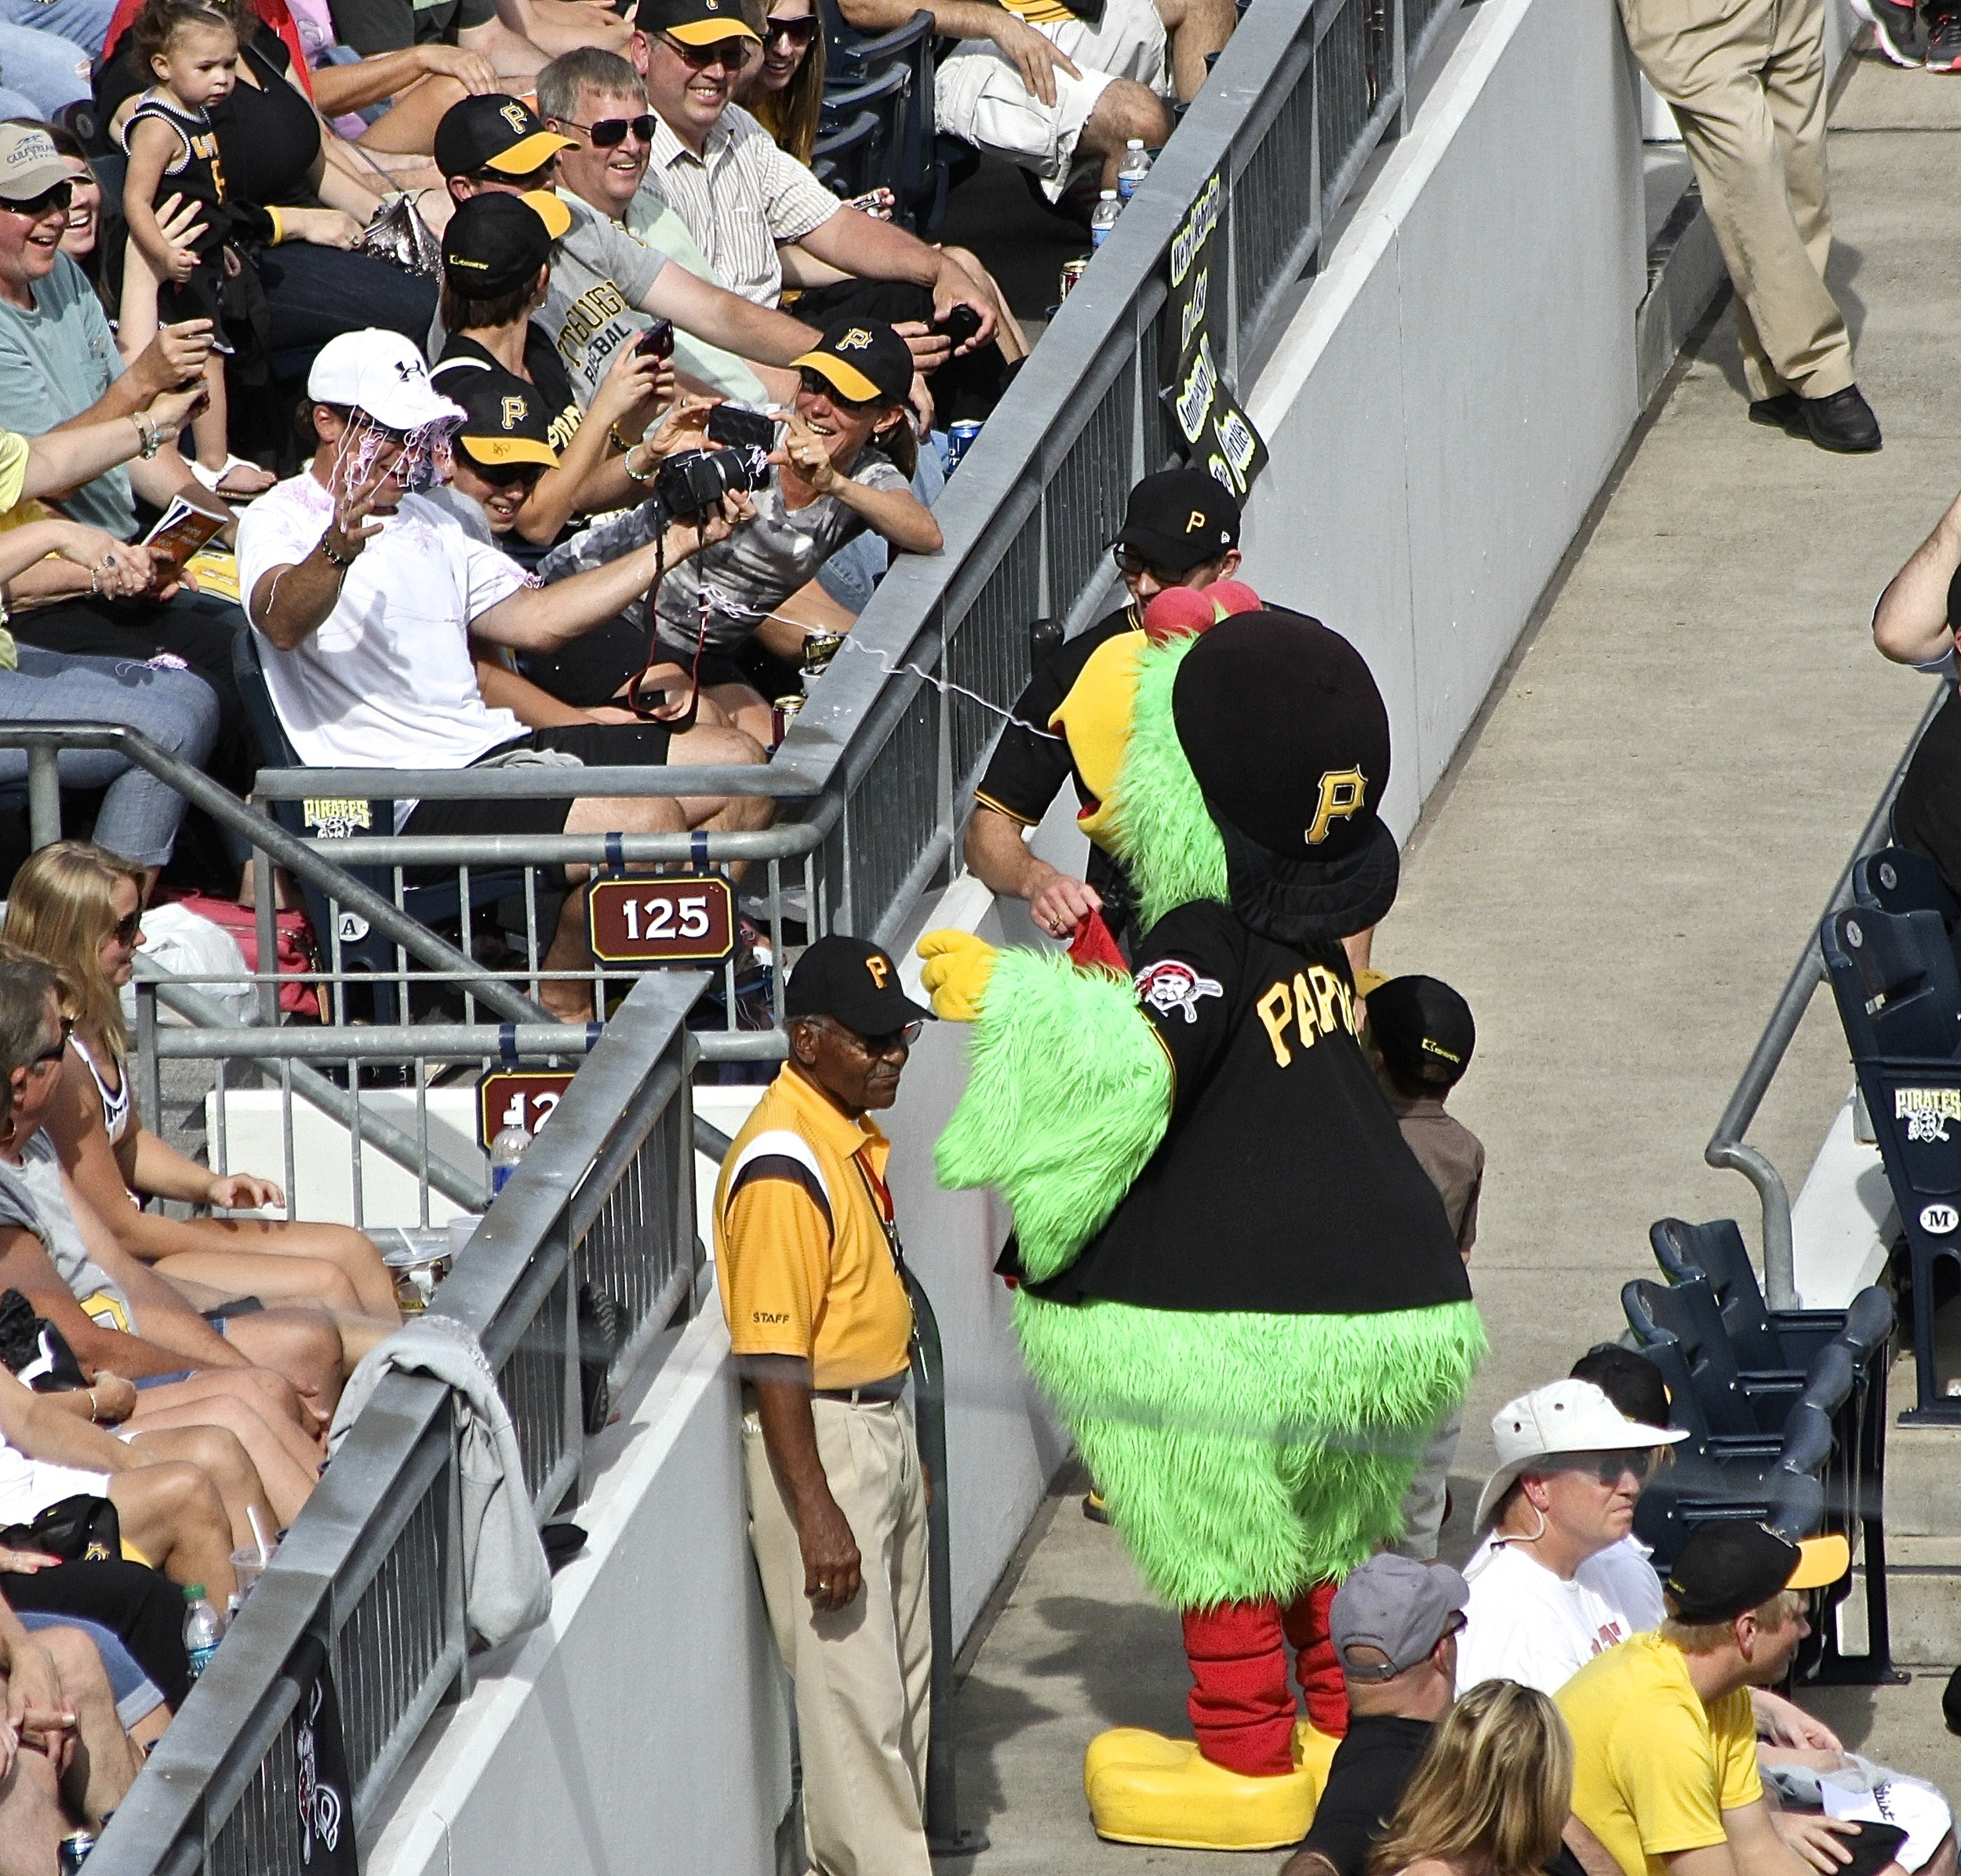 Pirate Parrot spraying some silly string